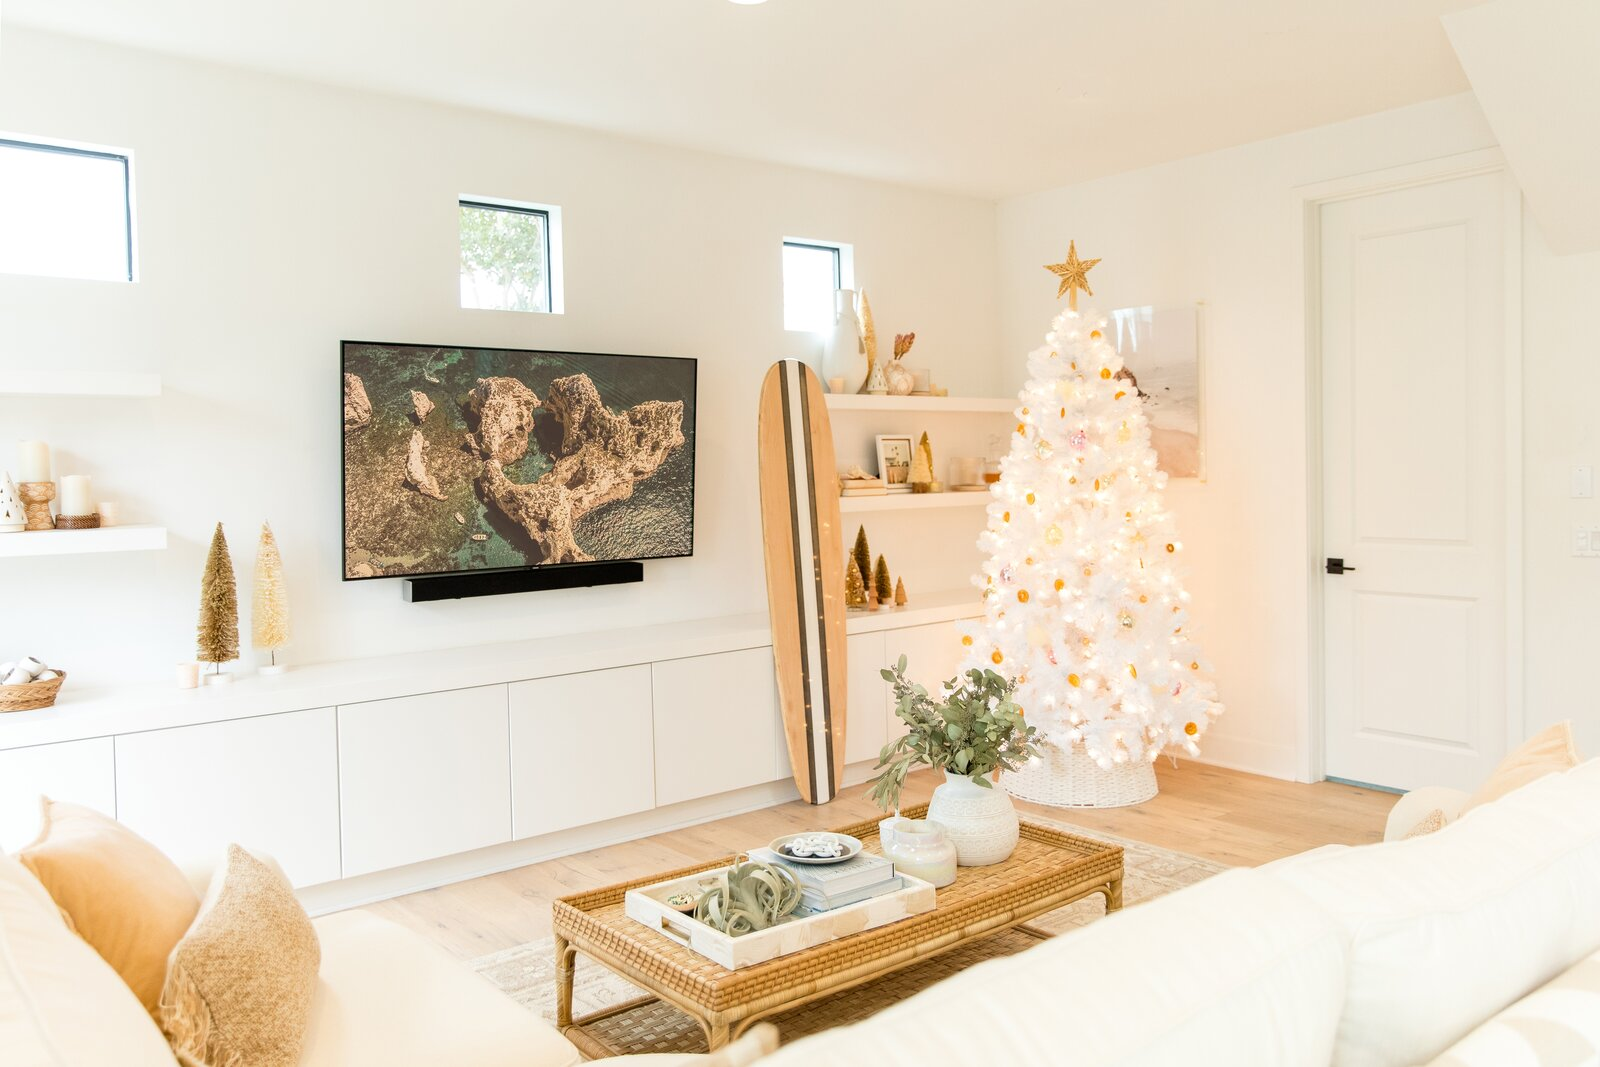 Living Room, Coffee Tables, Light Hardwood Floor, Storage, Sectional, and Shelves Living room set for a beachy Christmas  Photo 1 of 22 in Dwell's Holiday Gift Guides Are a One-Stop Shop for Everyone on Your Nice List